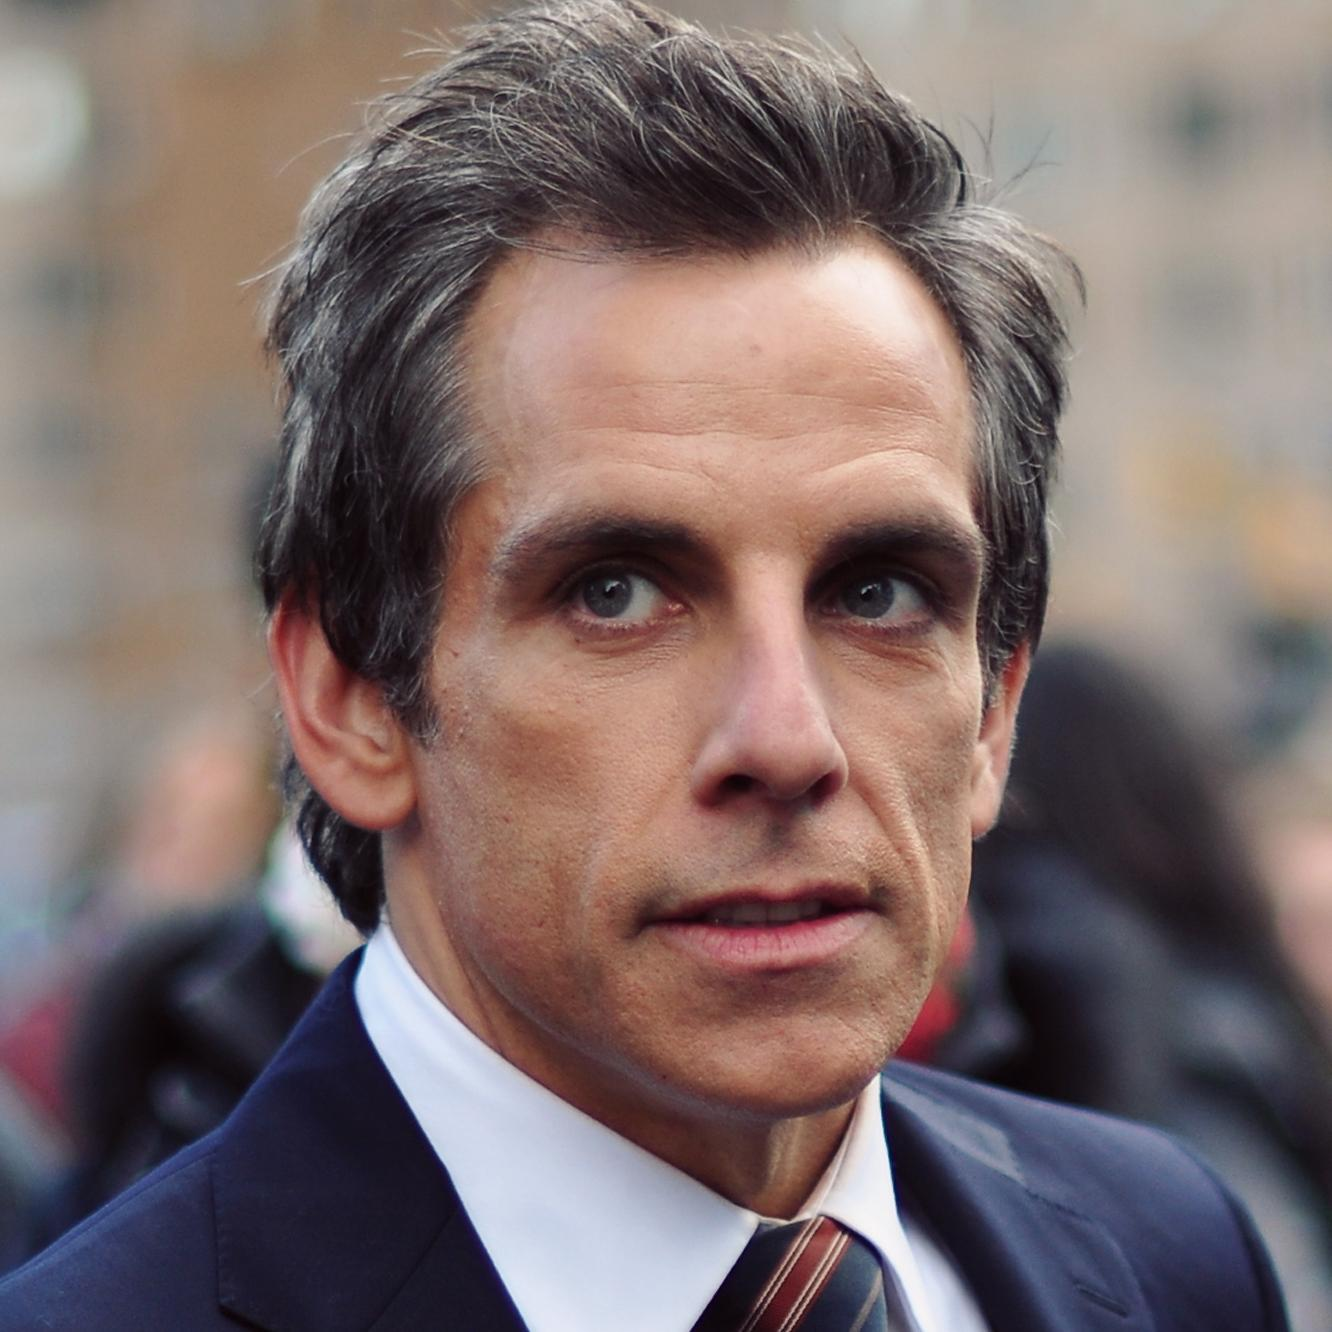 Ben Stiller Bio, Net Worth, Facts